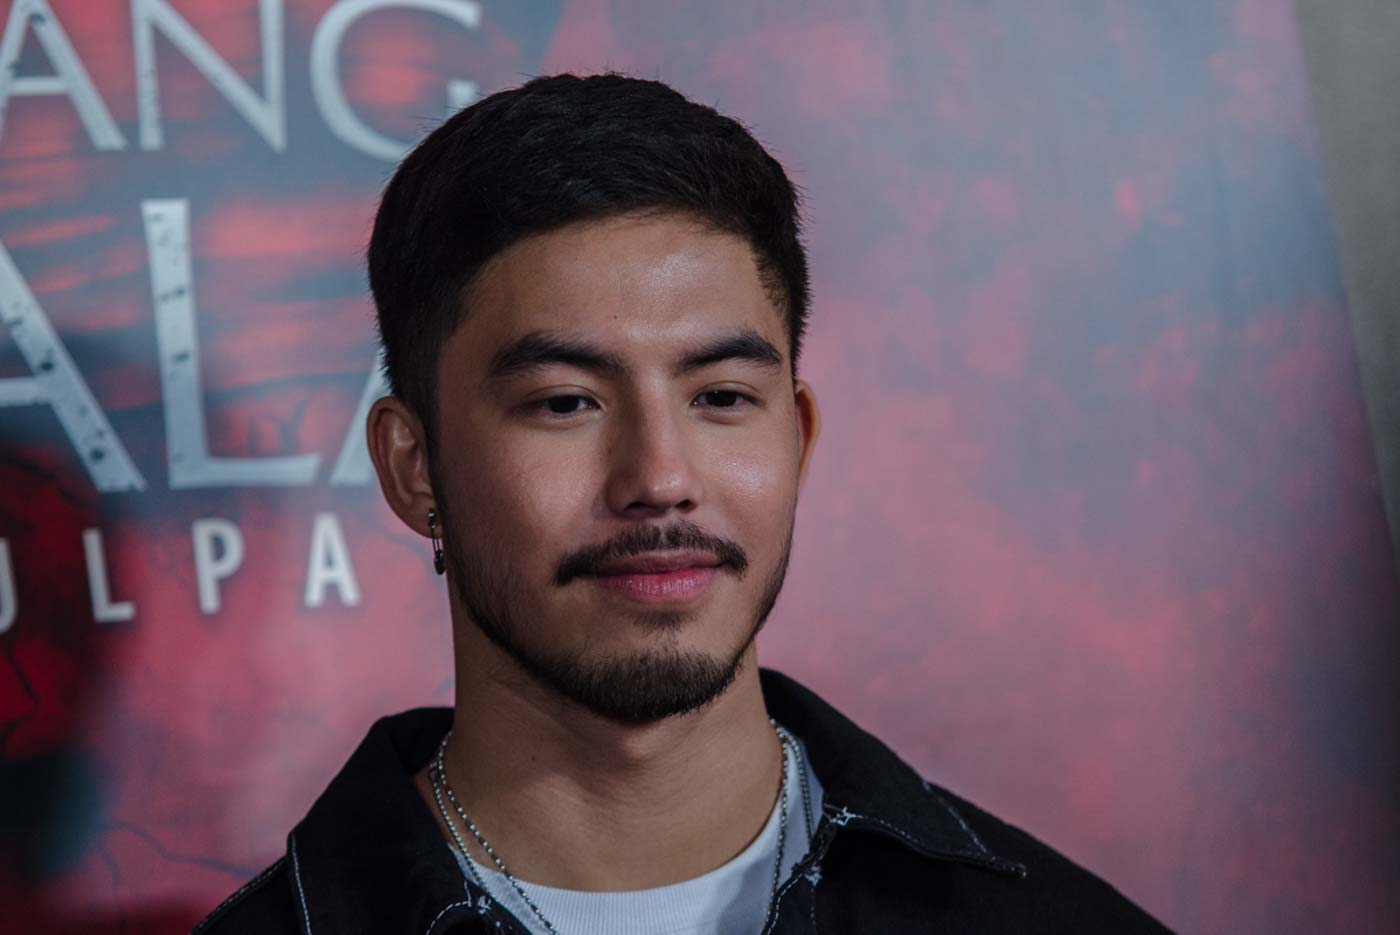 ANGER MANAGEMENT. Tony Labrusca says he has seen a specialist regarding his anger management issues. File photo by Rob Reyes/Rappler